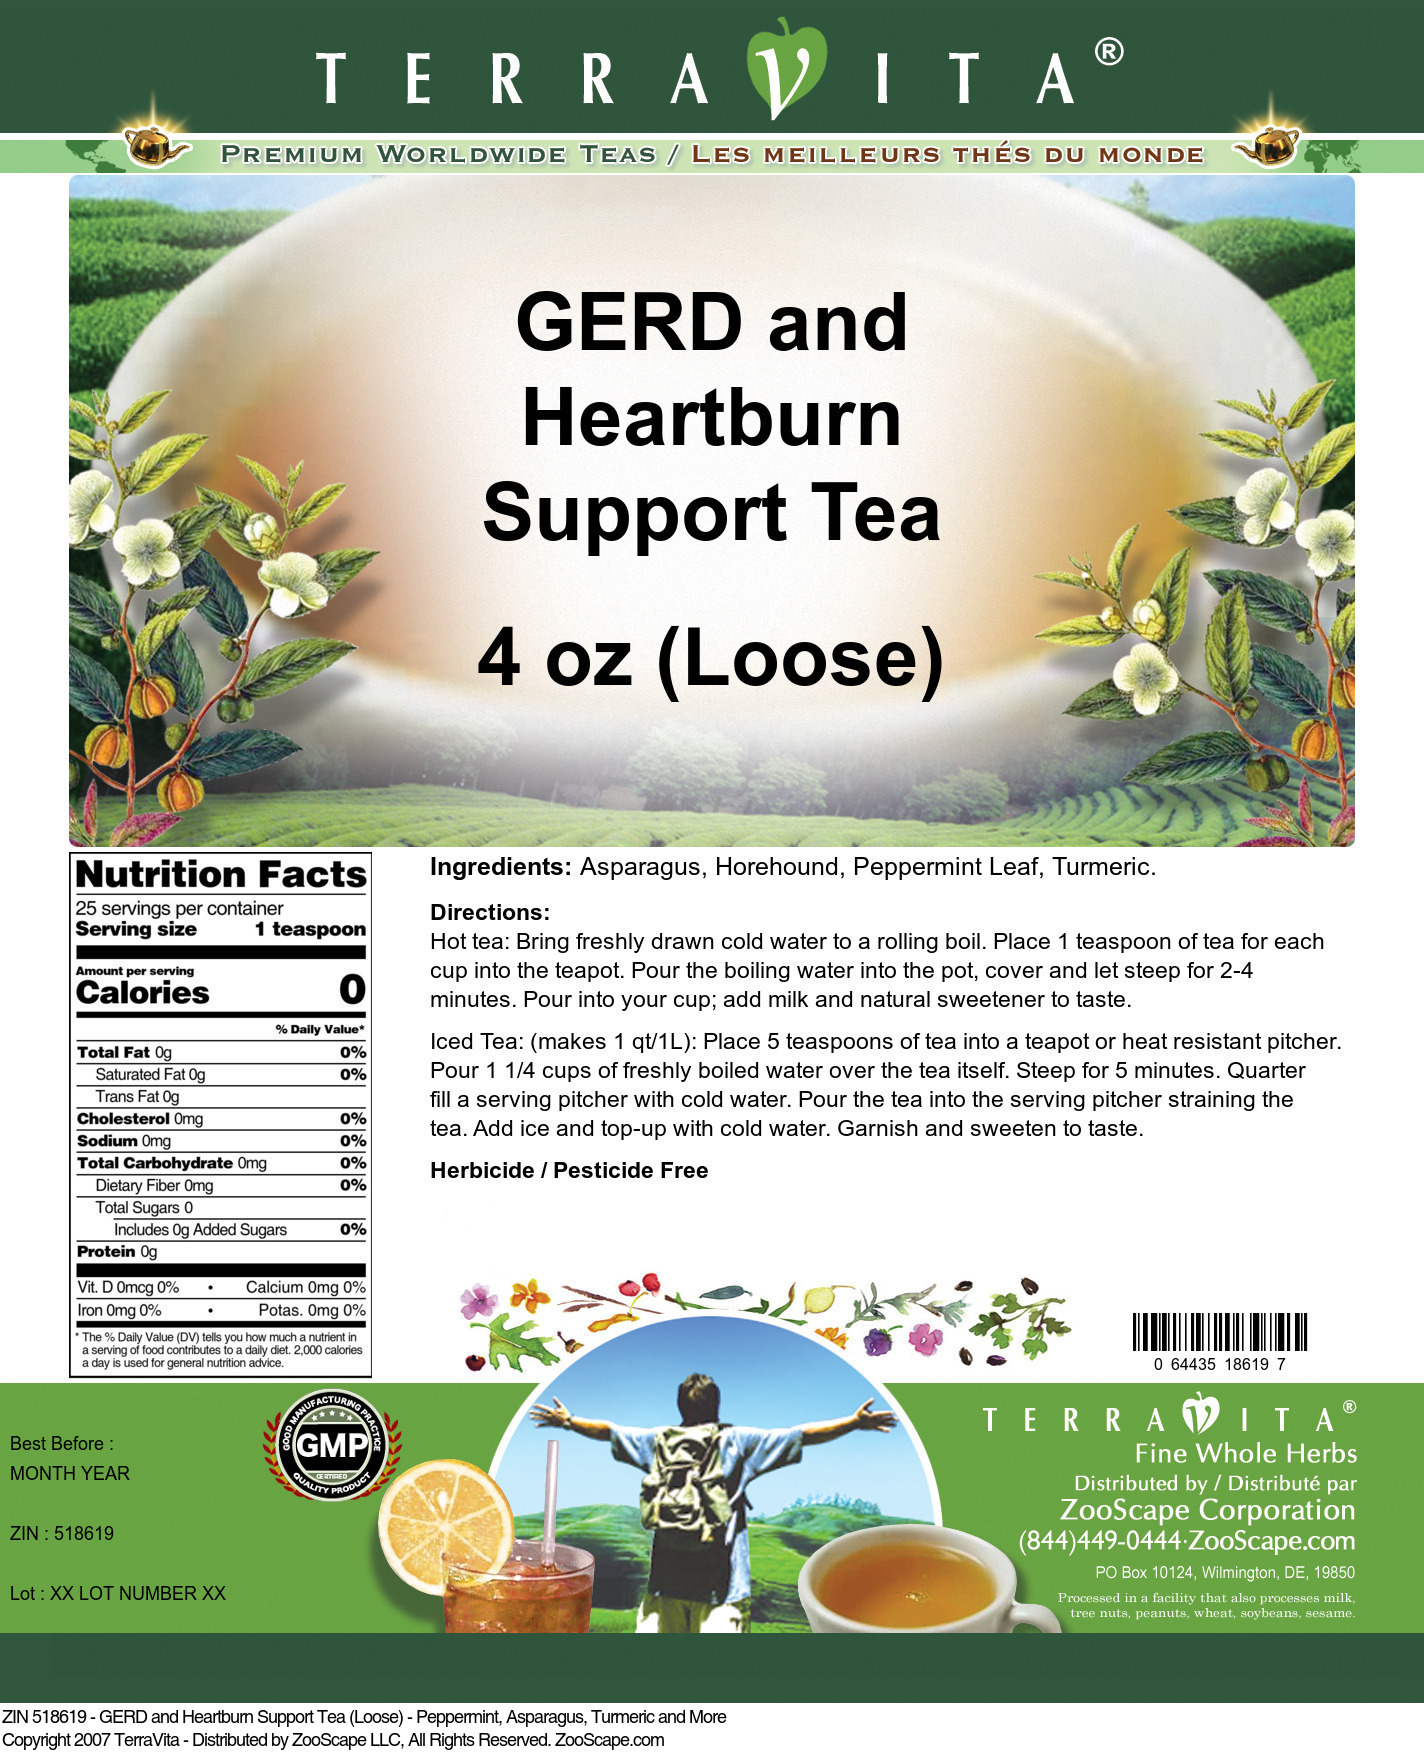 GERD and Heartburn Support Tea (Loose) - Peppermint, Asparagus, Turmeric and More